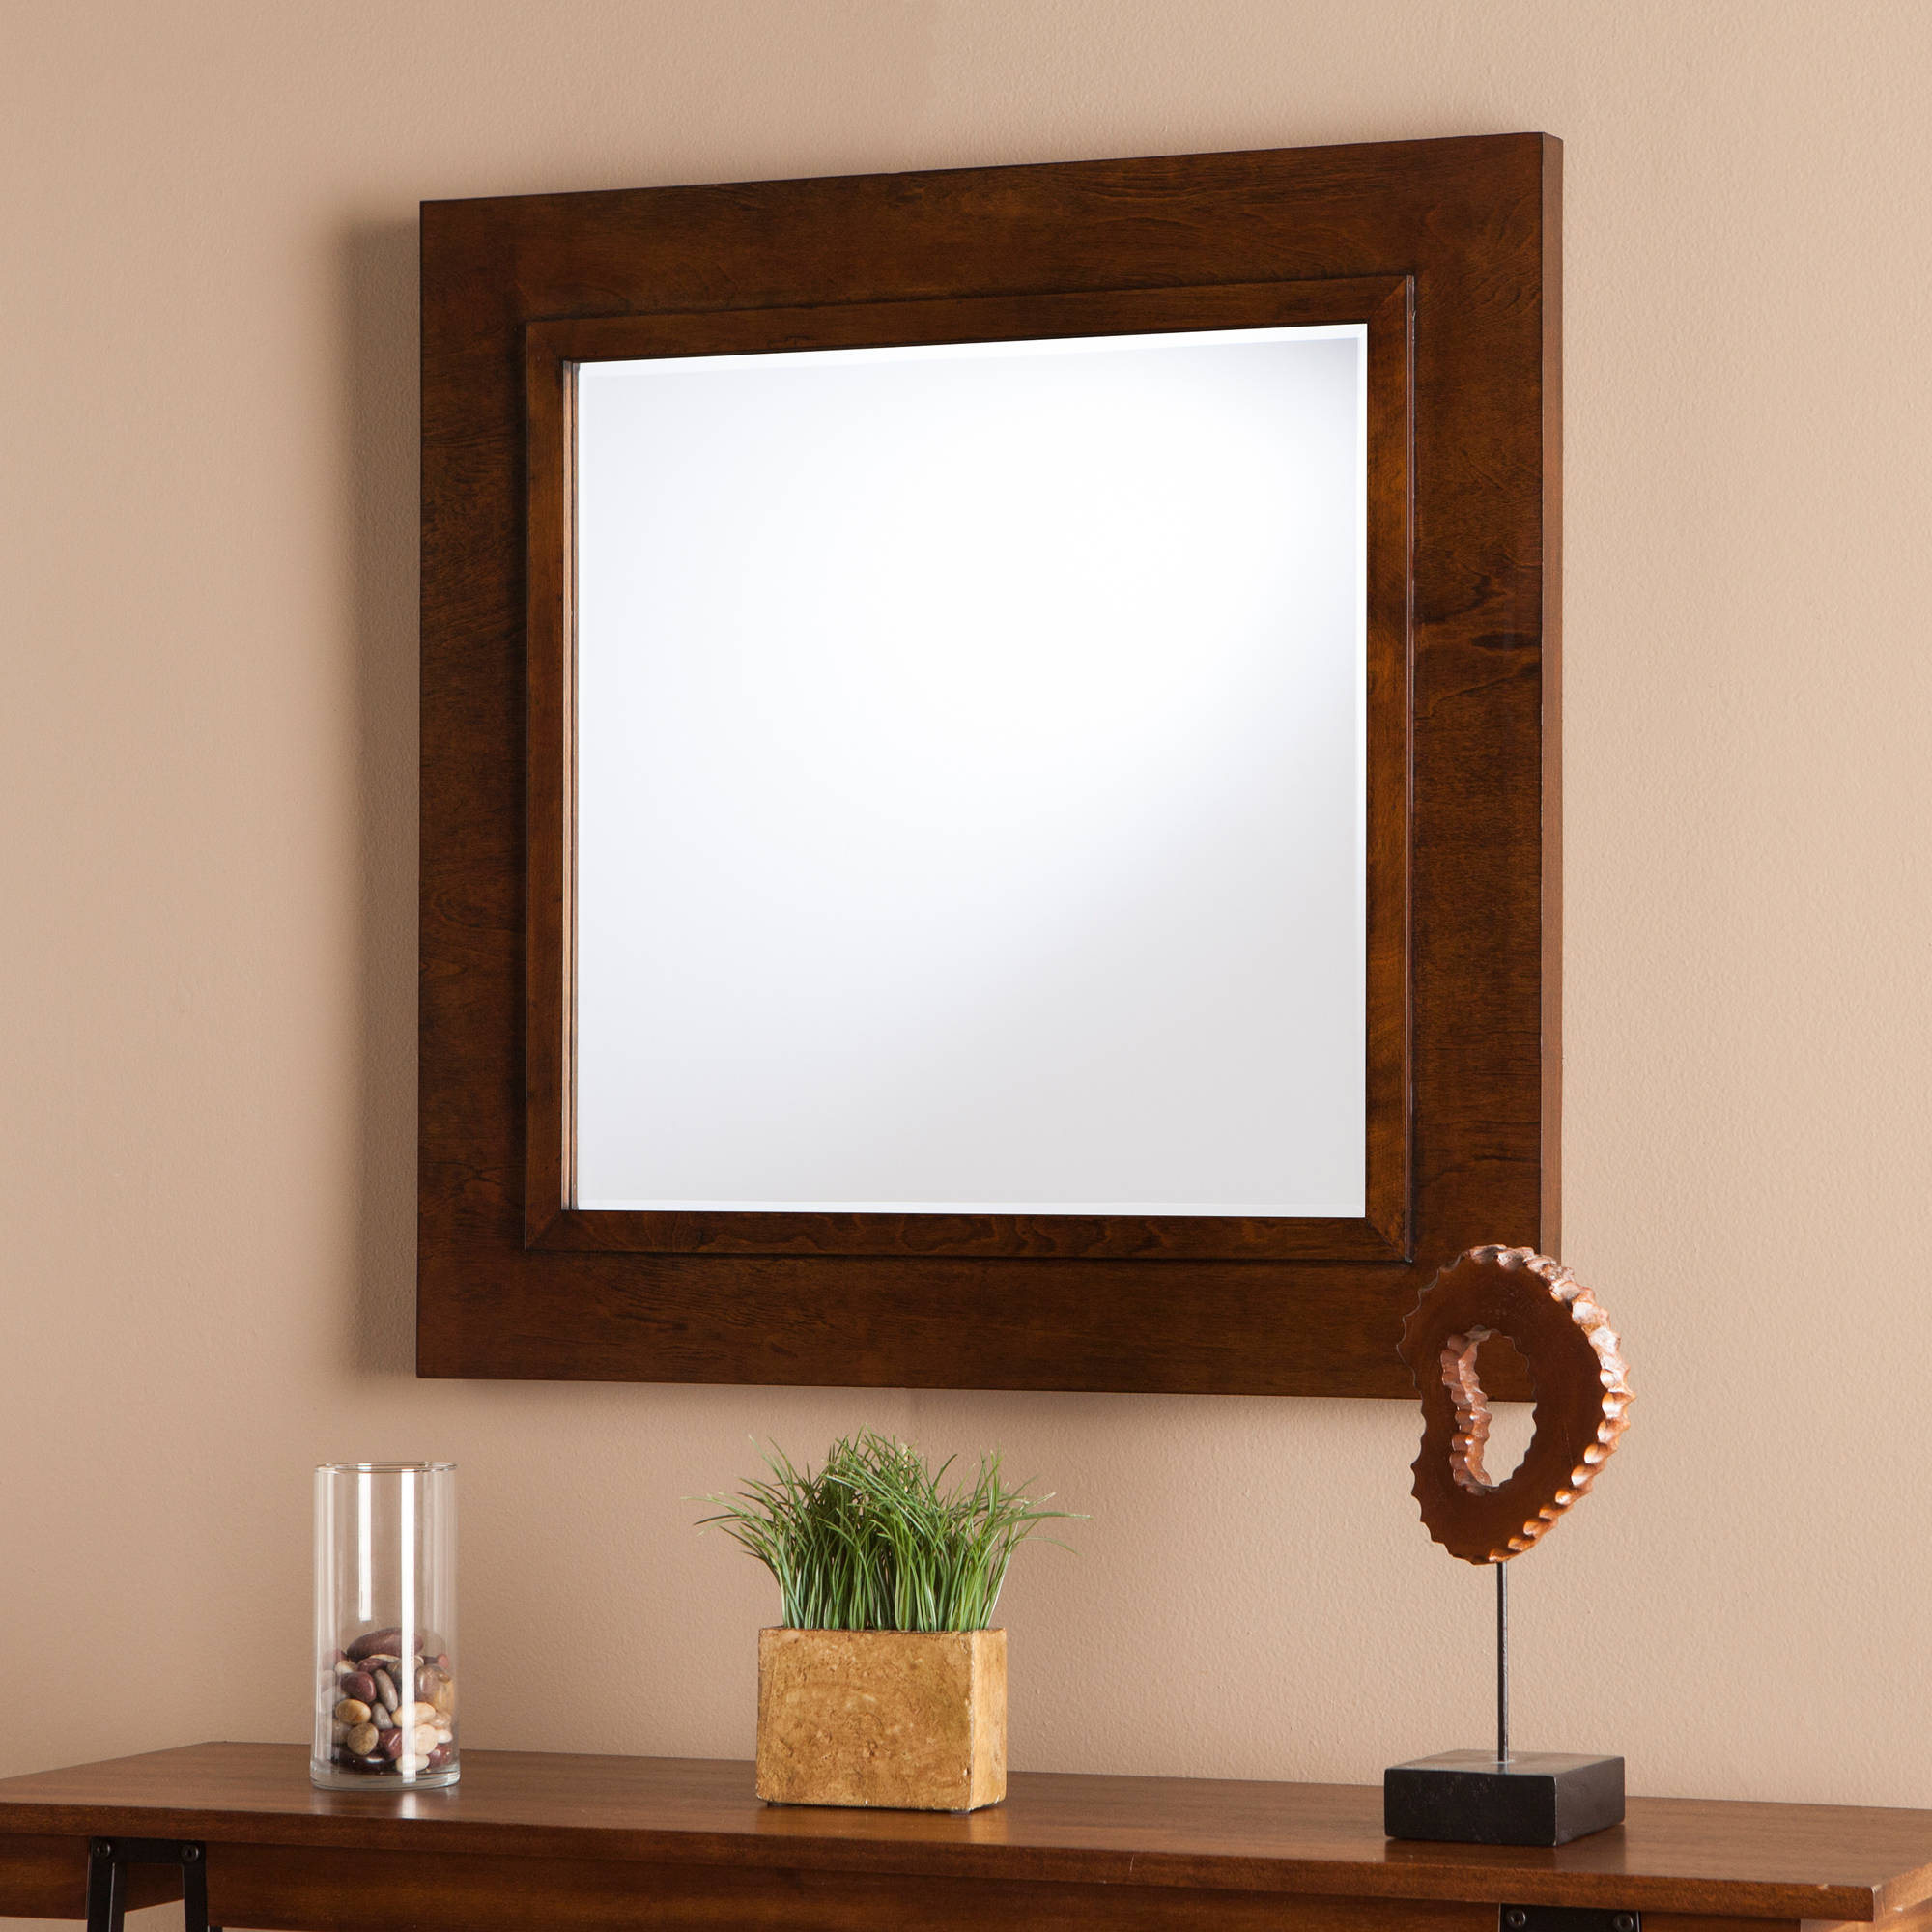 Southern Enterprises Damione Decorative Mirror, Oak Saddle